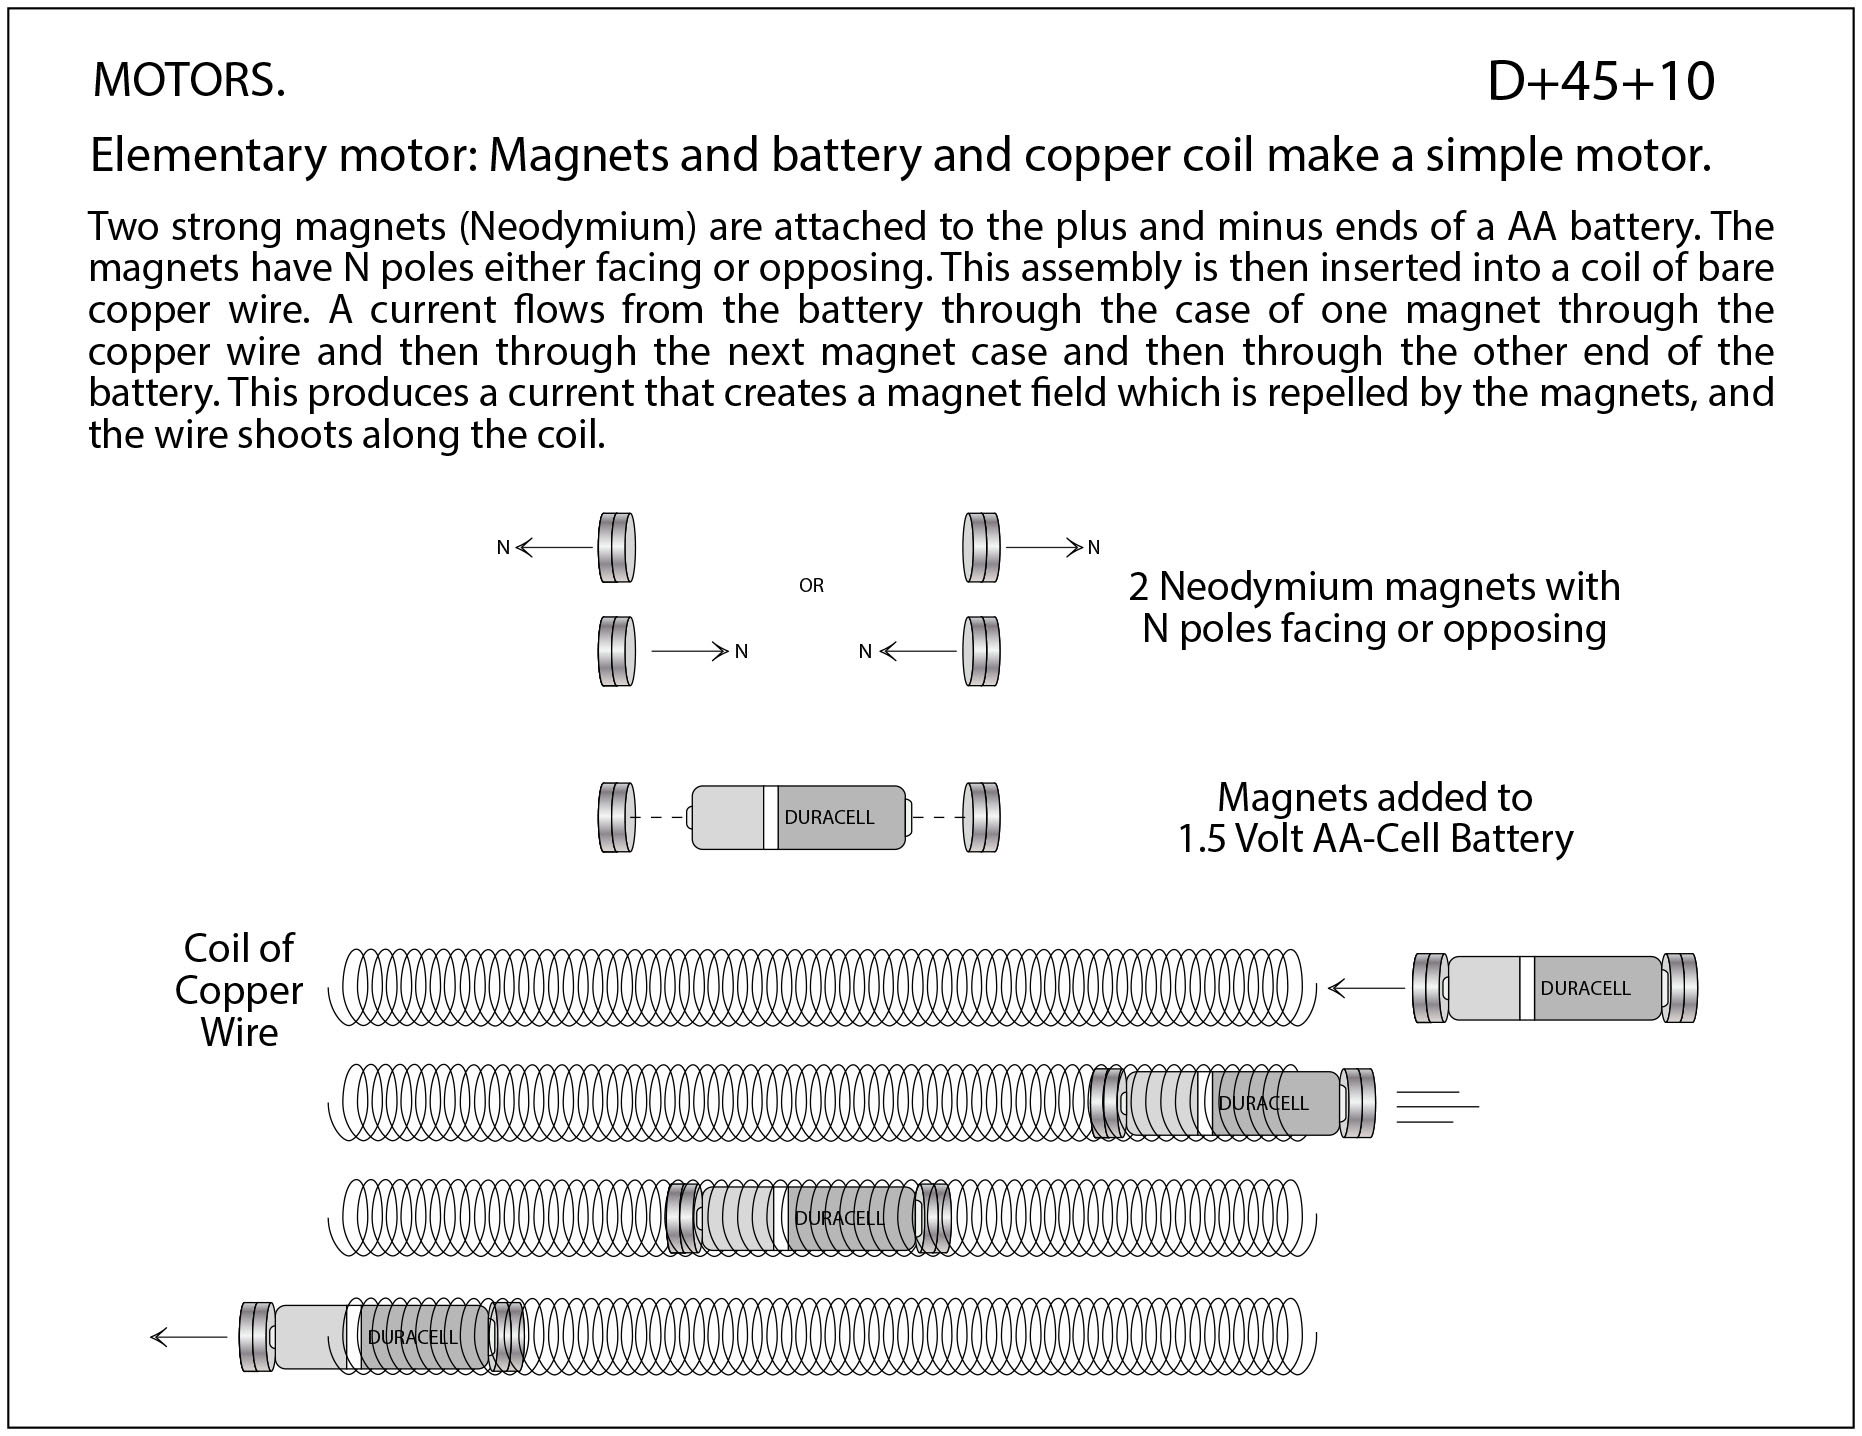 Elementary motor: Magnets and battery and copper coil make a simple ...